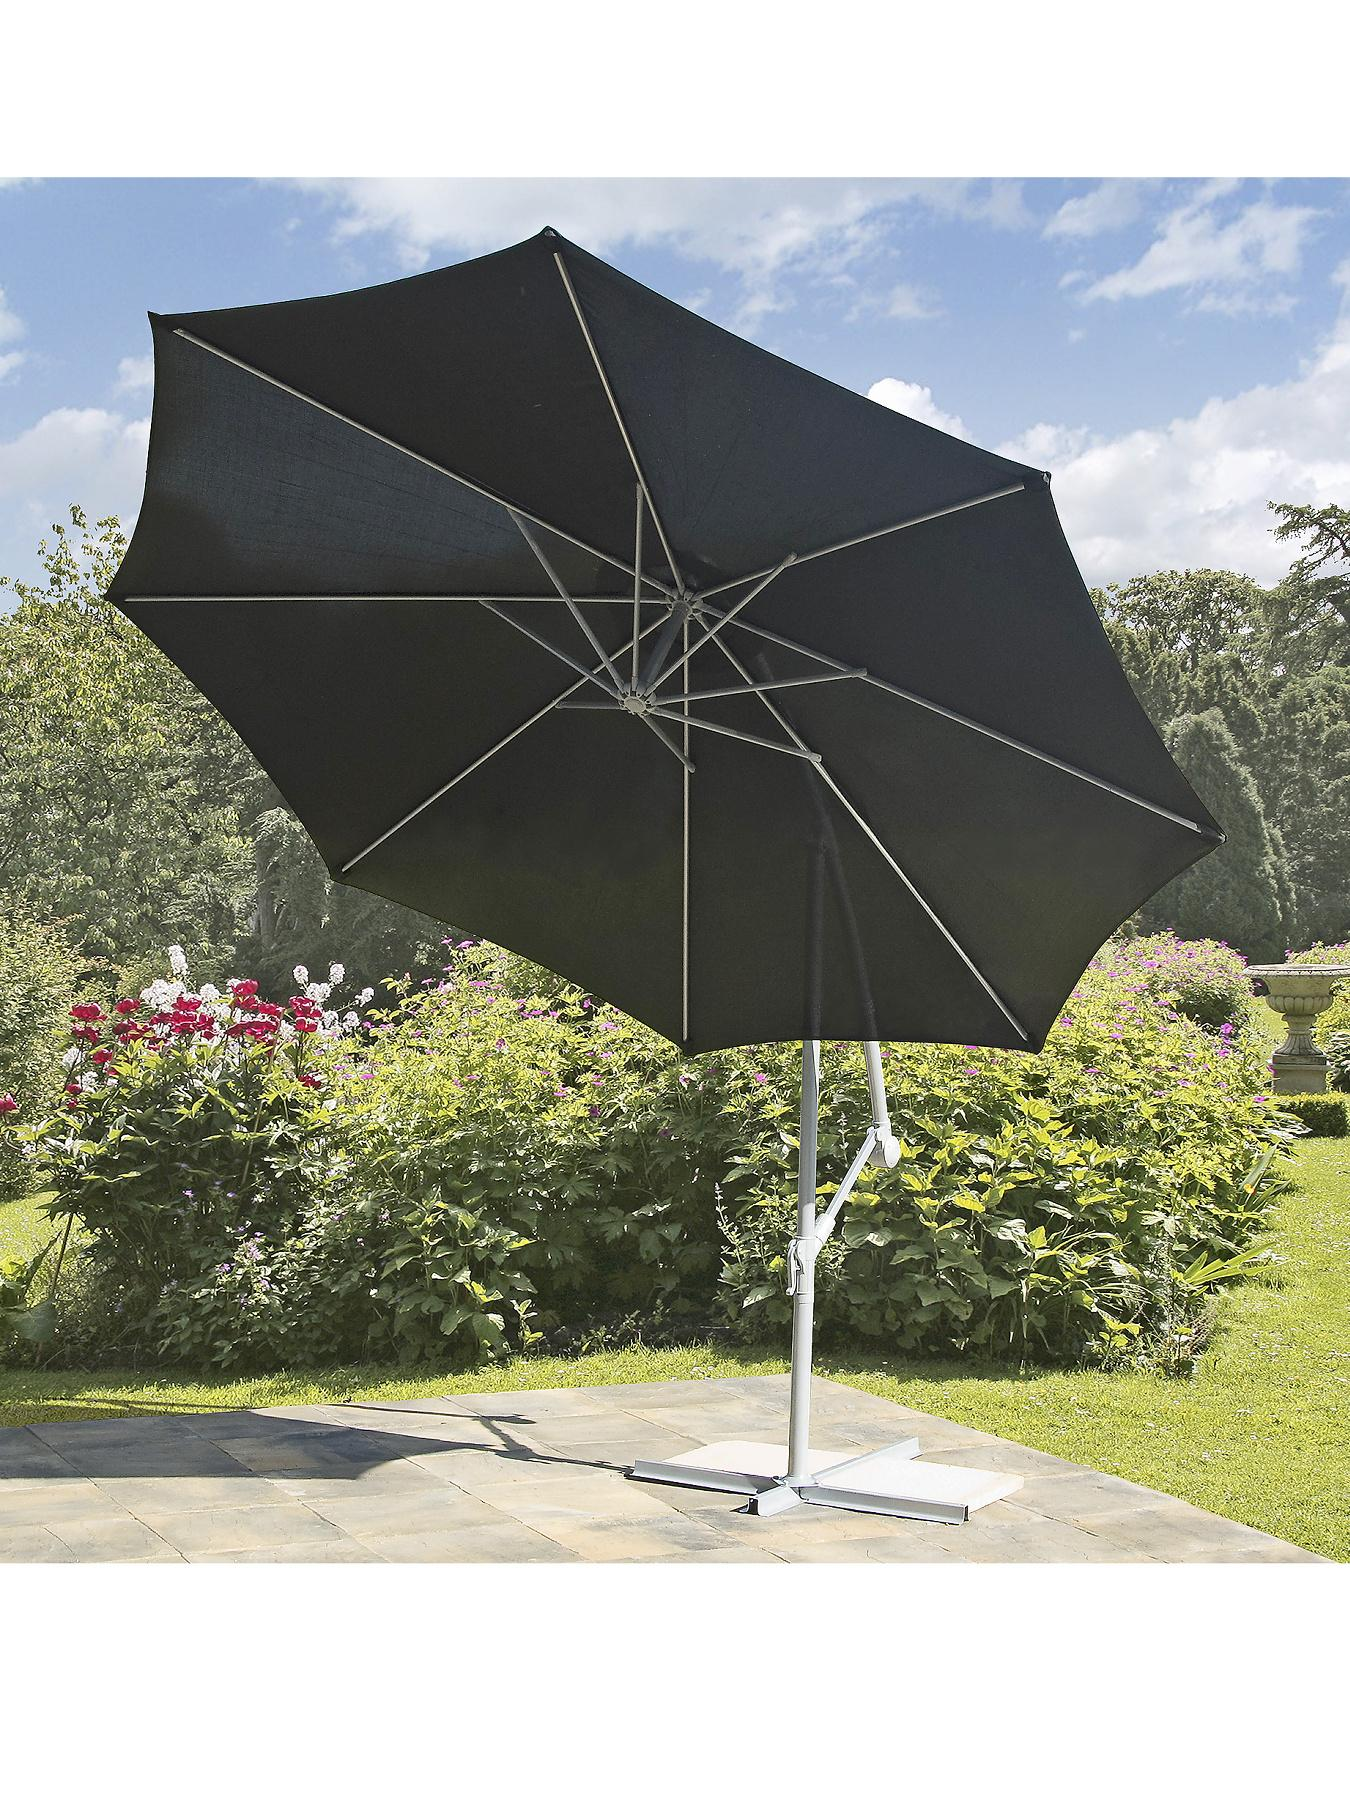 Hanging Parasol 10ft - Black - Black, Black